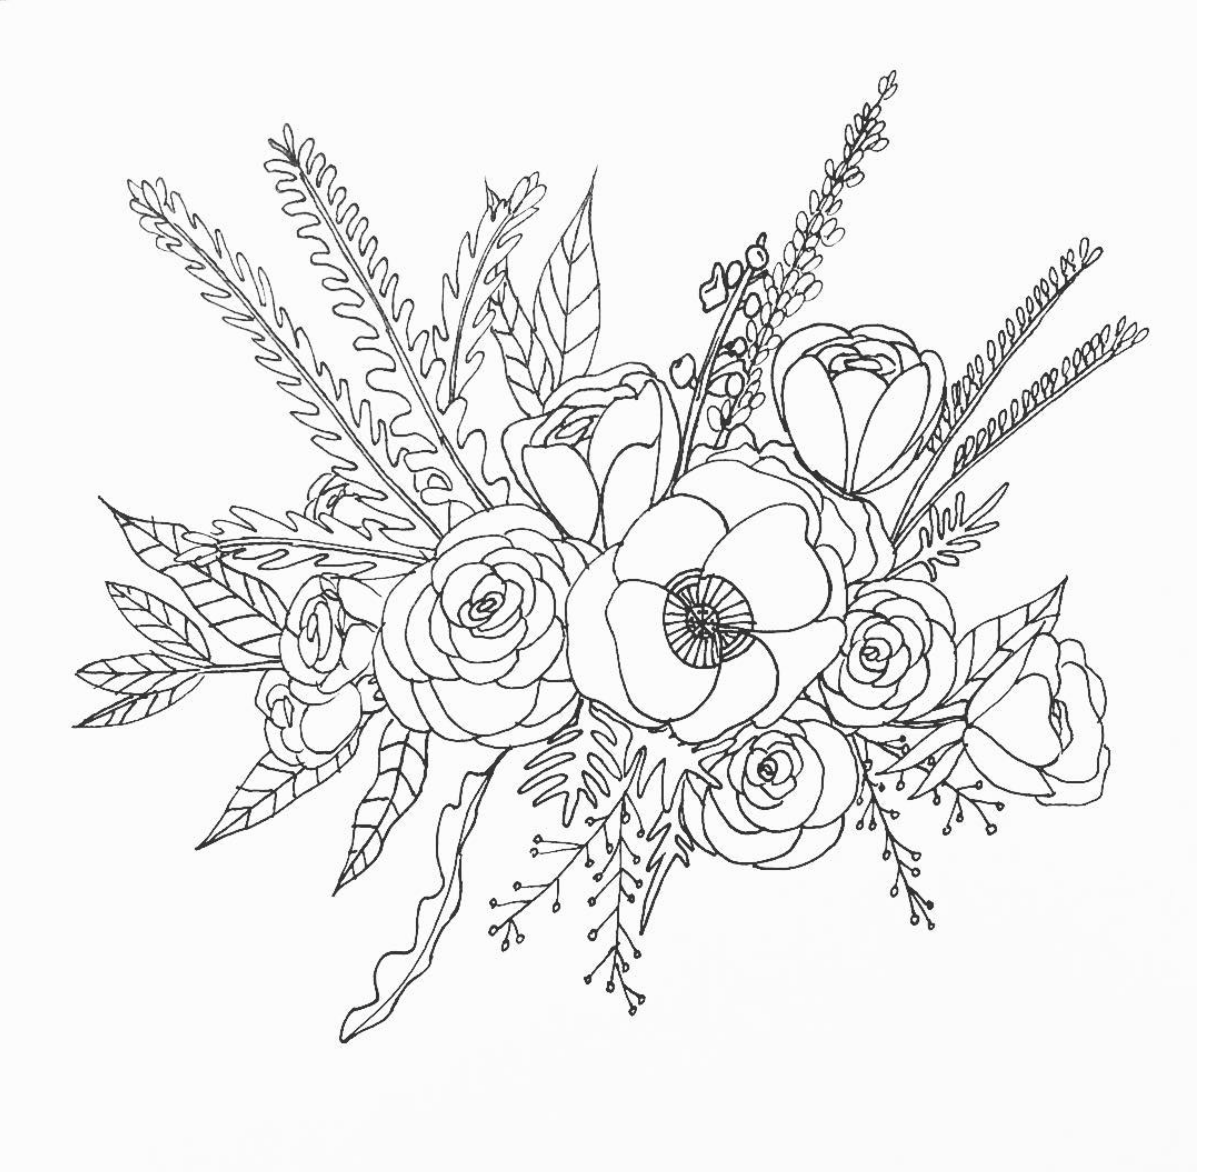 Flower Plant Line Drawing : Line drawing flower illustration floral bouquet art